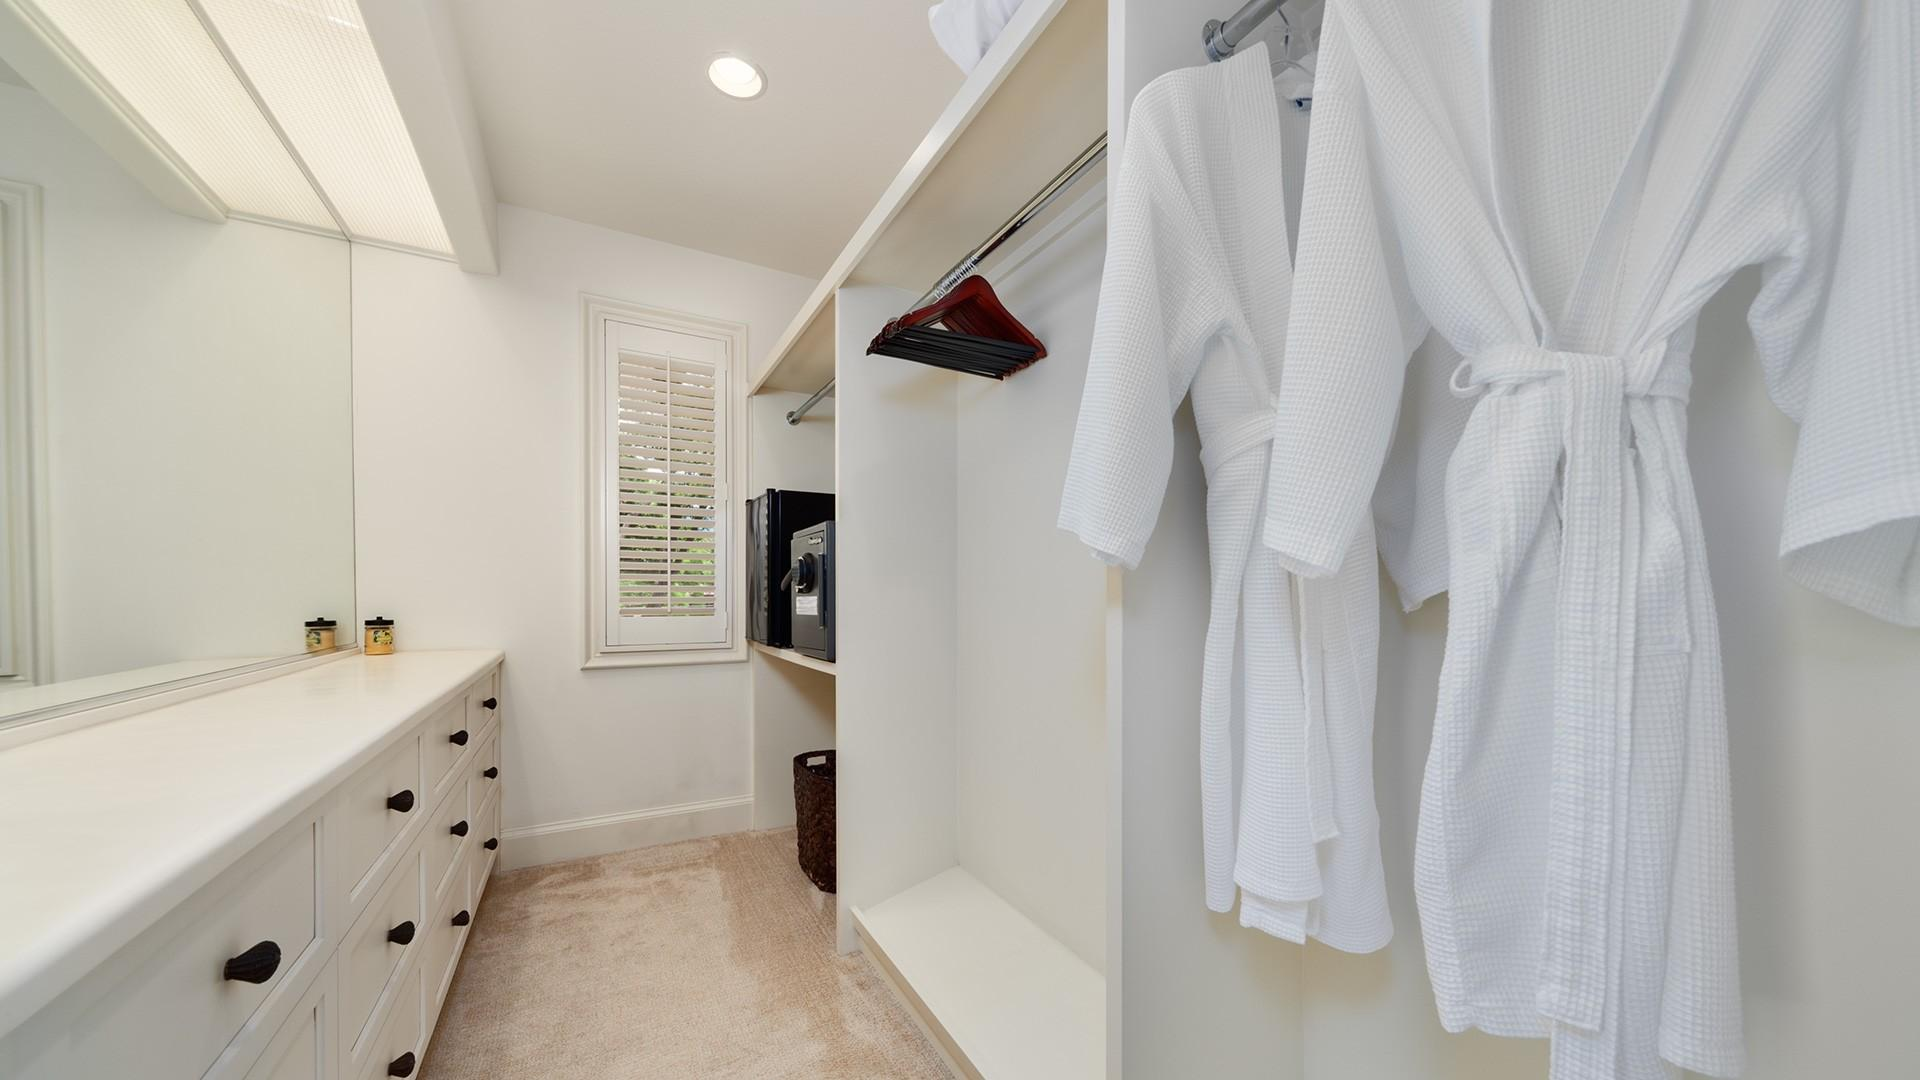 A safe is also provided in the roomy, well-equipped walk-in master bedroom closet.